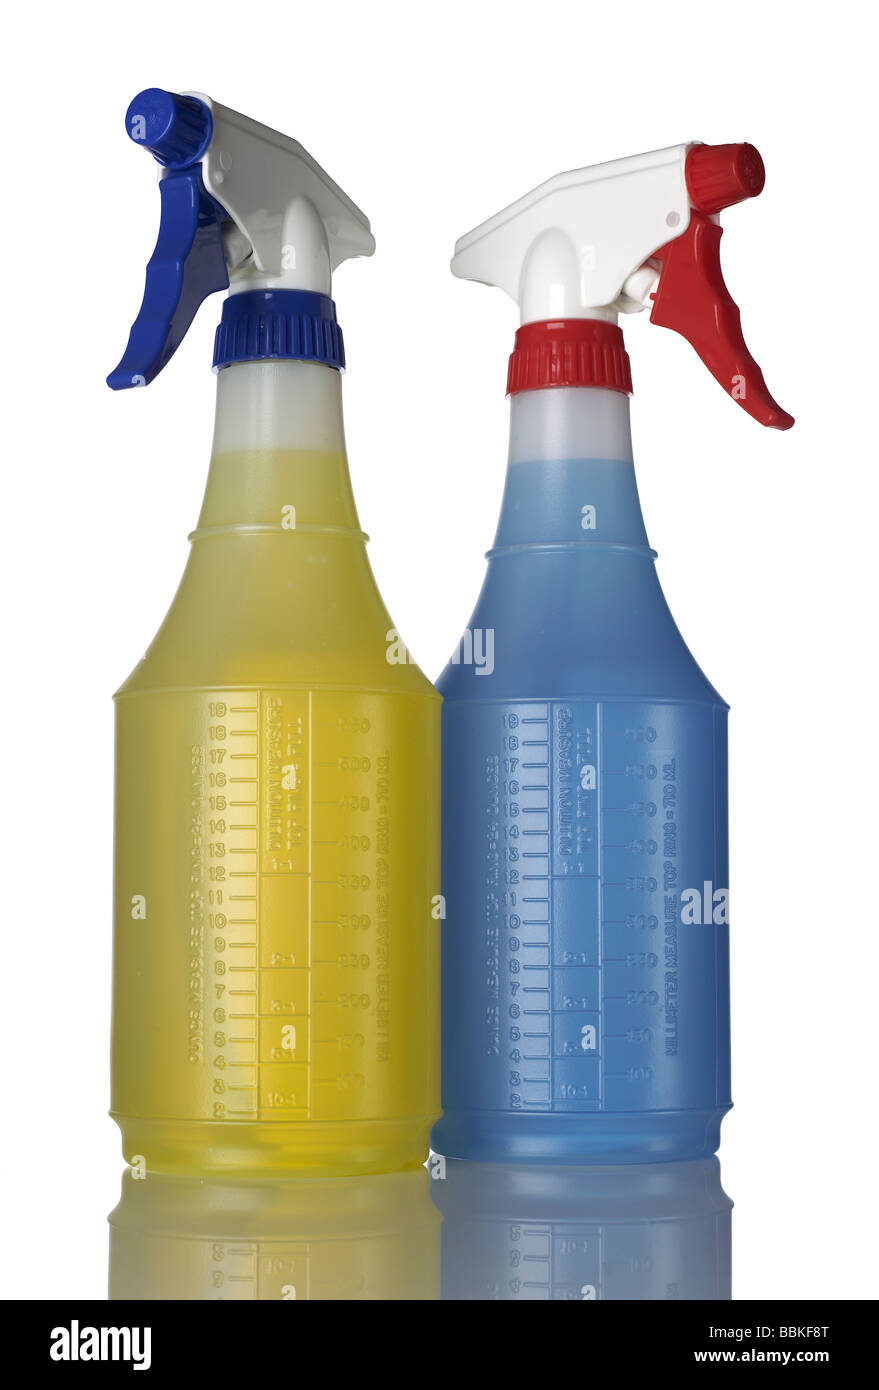 2 two Spray Bottles - Stock Image